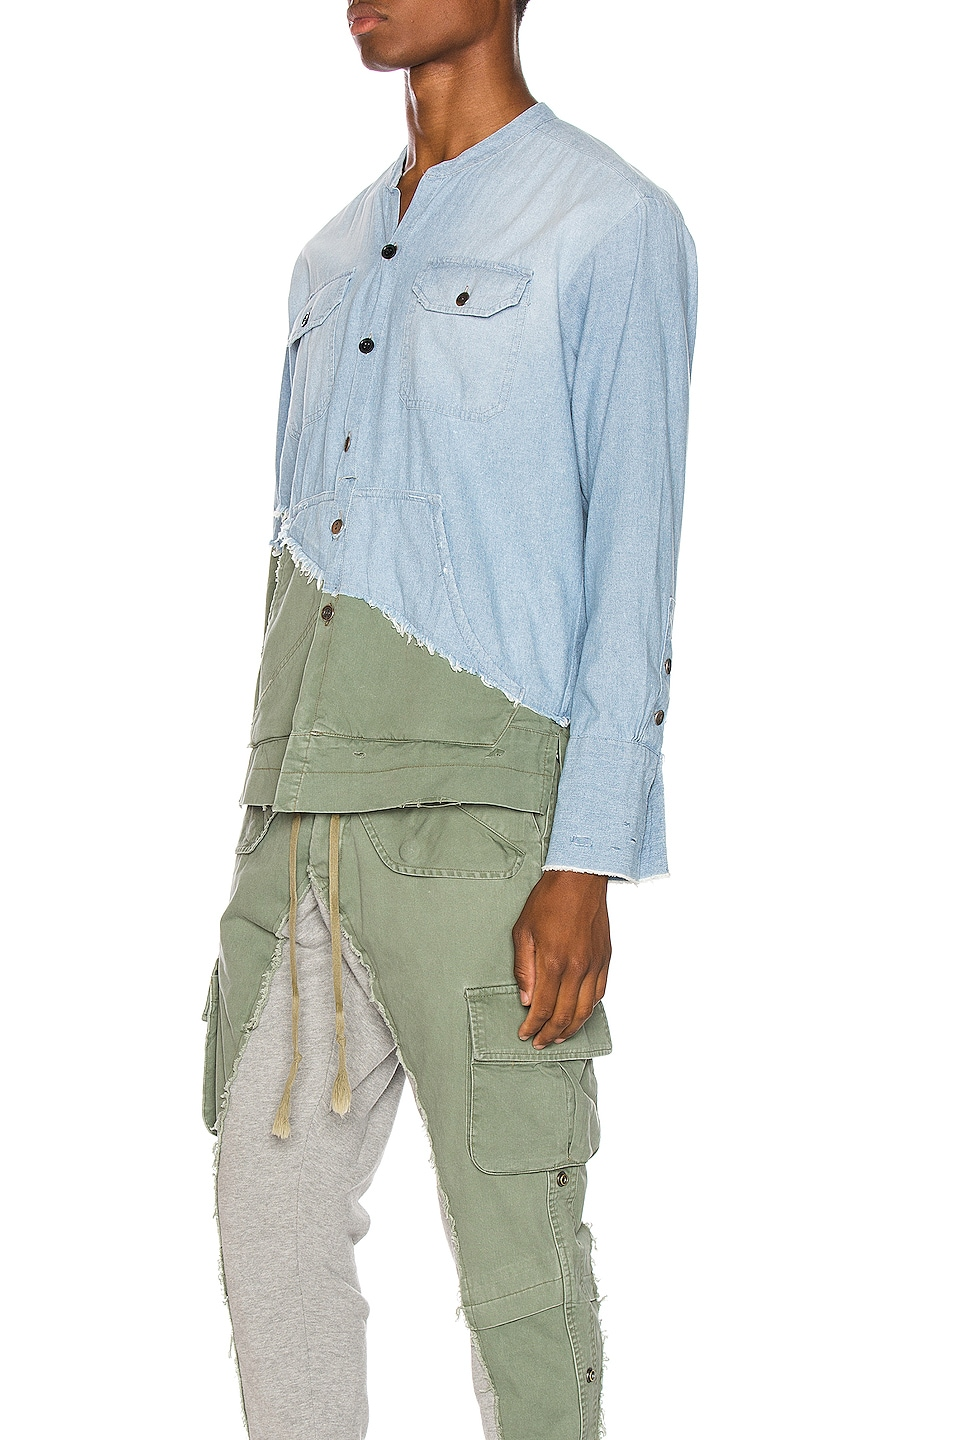 Image 3 of Greg Lauren Army Studio Shirt in Light Blue & Army